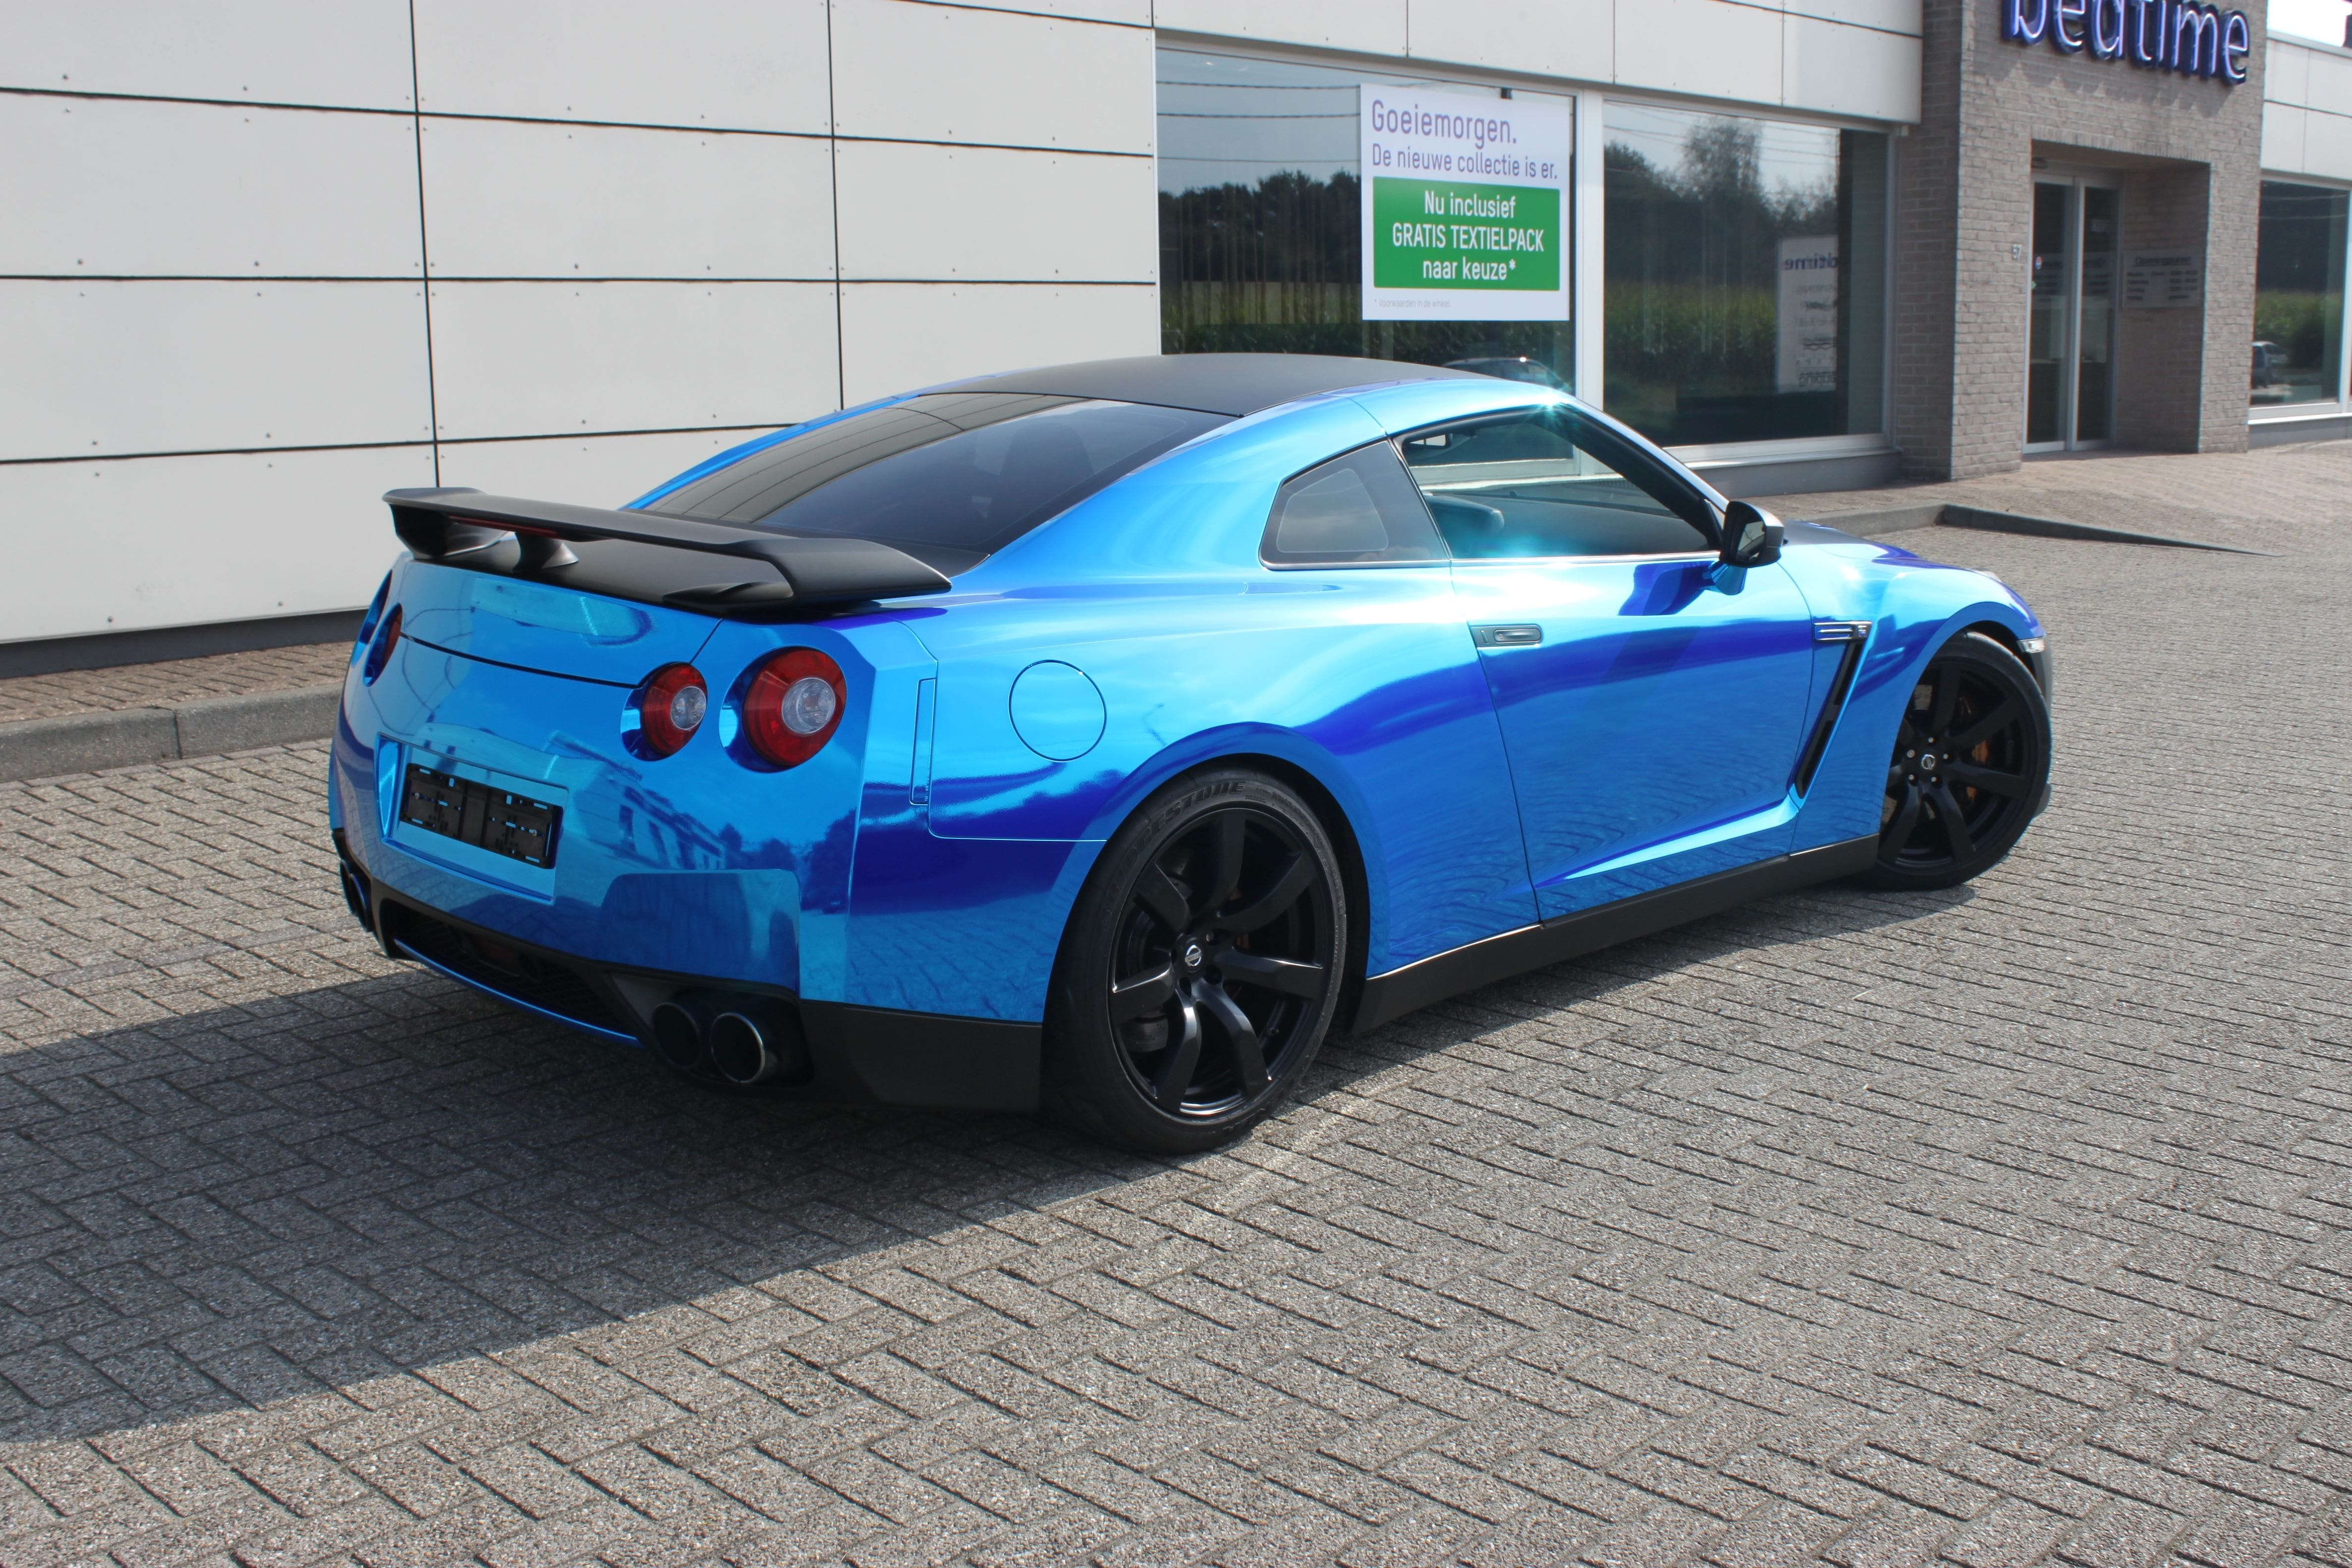 Nissan GT-R met Blue Chrome Wrap, Carwrapping door Wrapmyride.nu Foto-nr:6473, ©2020